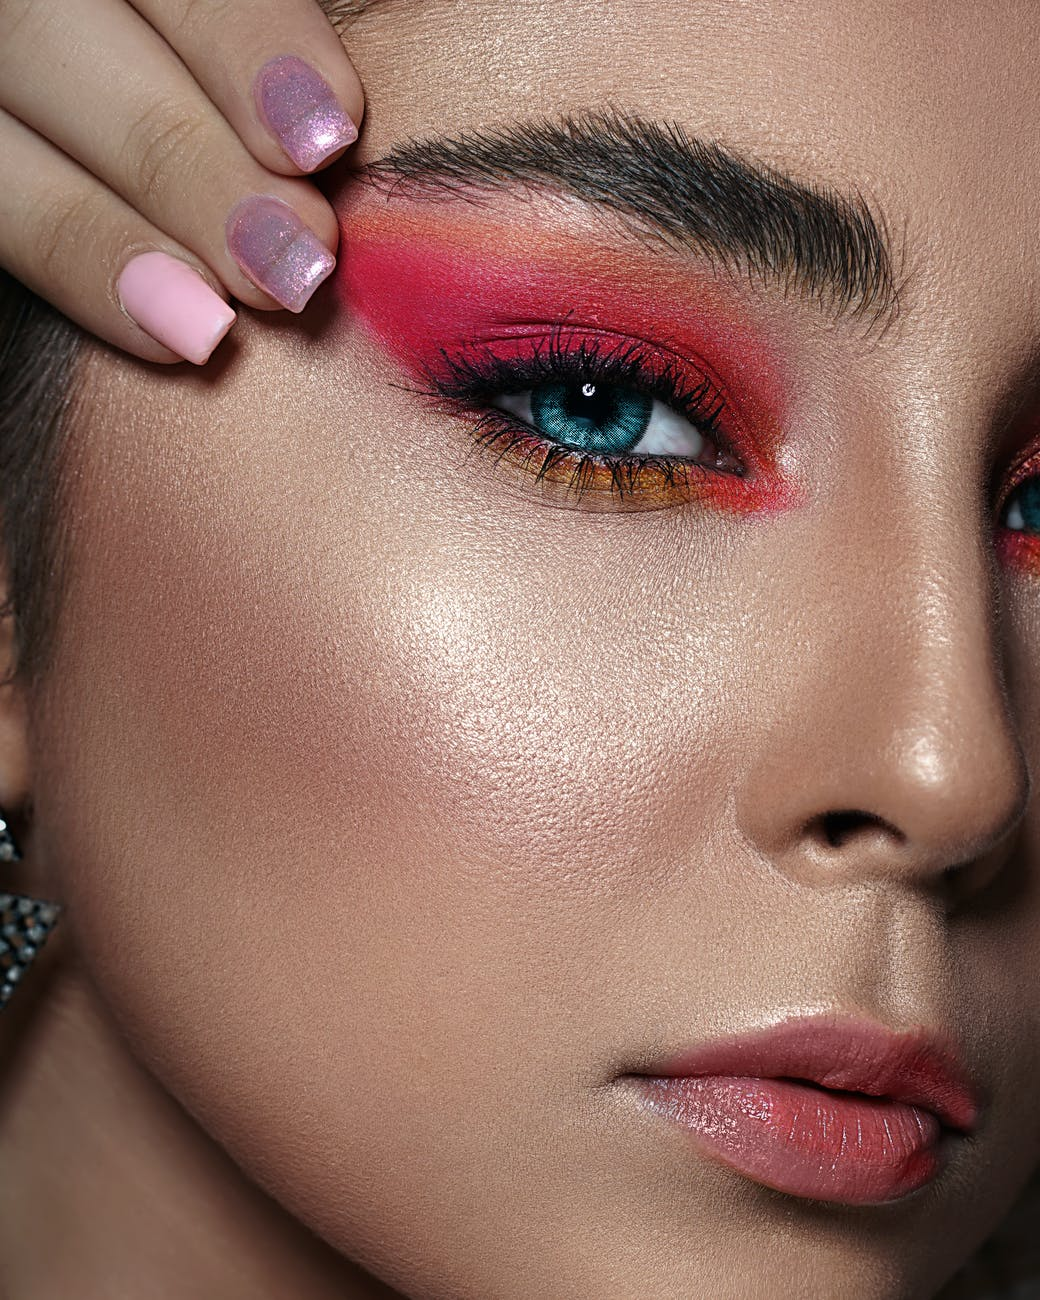 close up photo of woman with pink eyeshadow